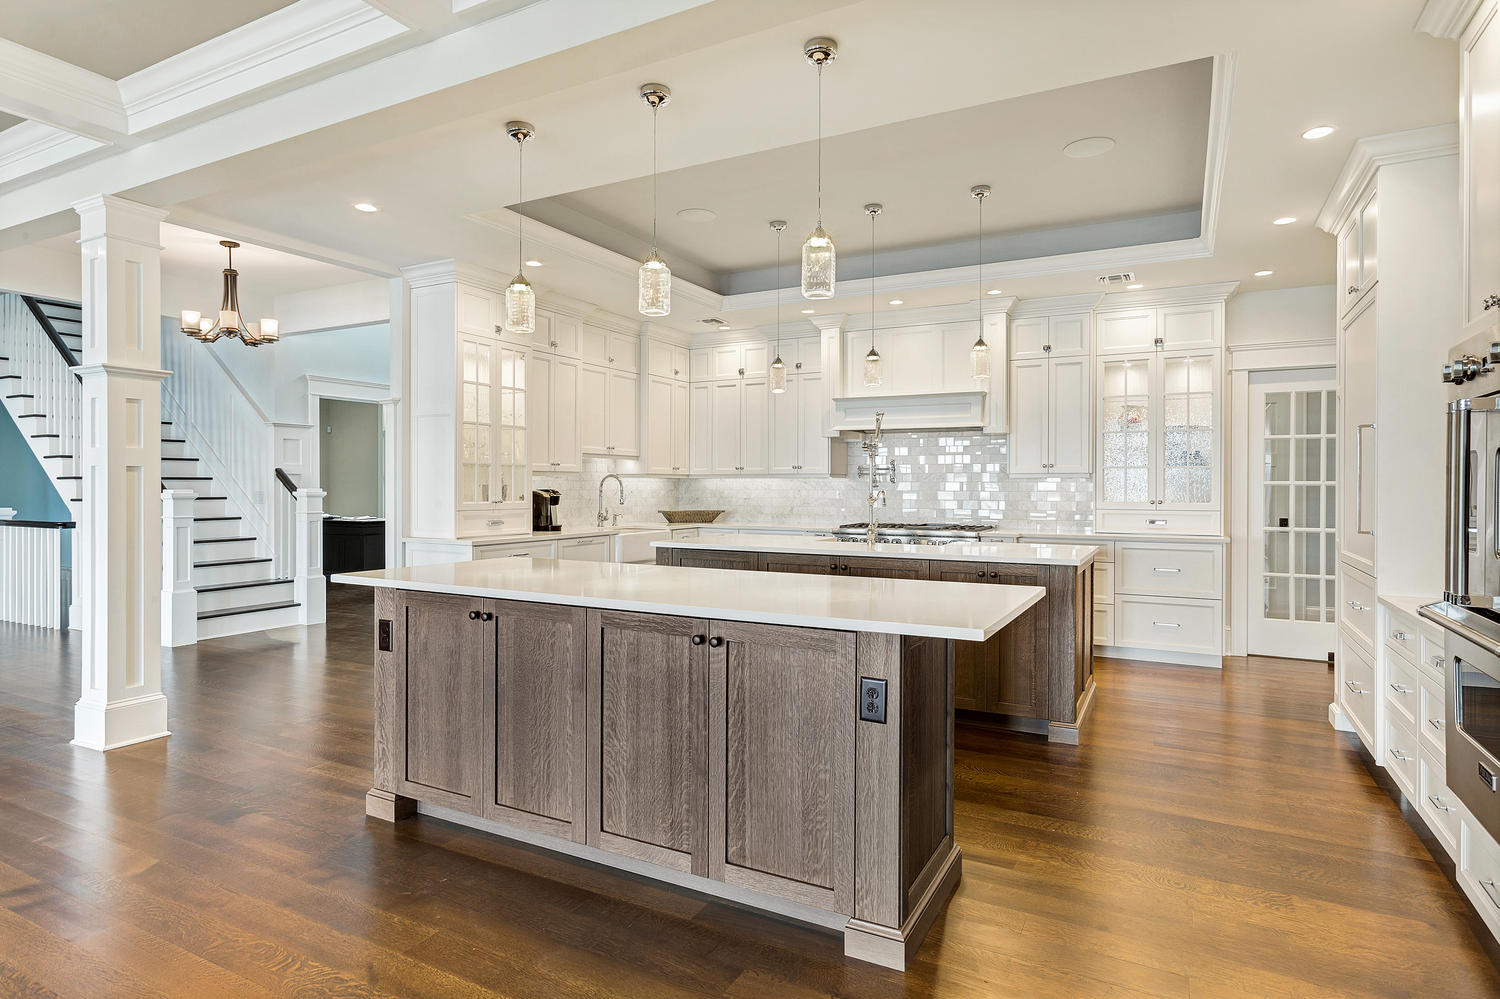 Interior Dream Kitchen Cabinets coastal dream kitchen brick new jersey by design line kitchens rich two tone kitchen